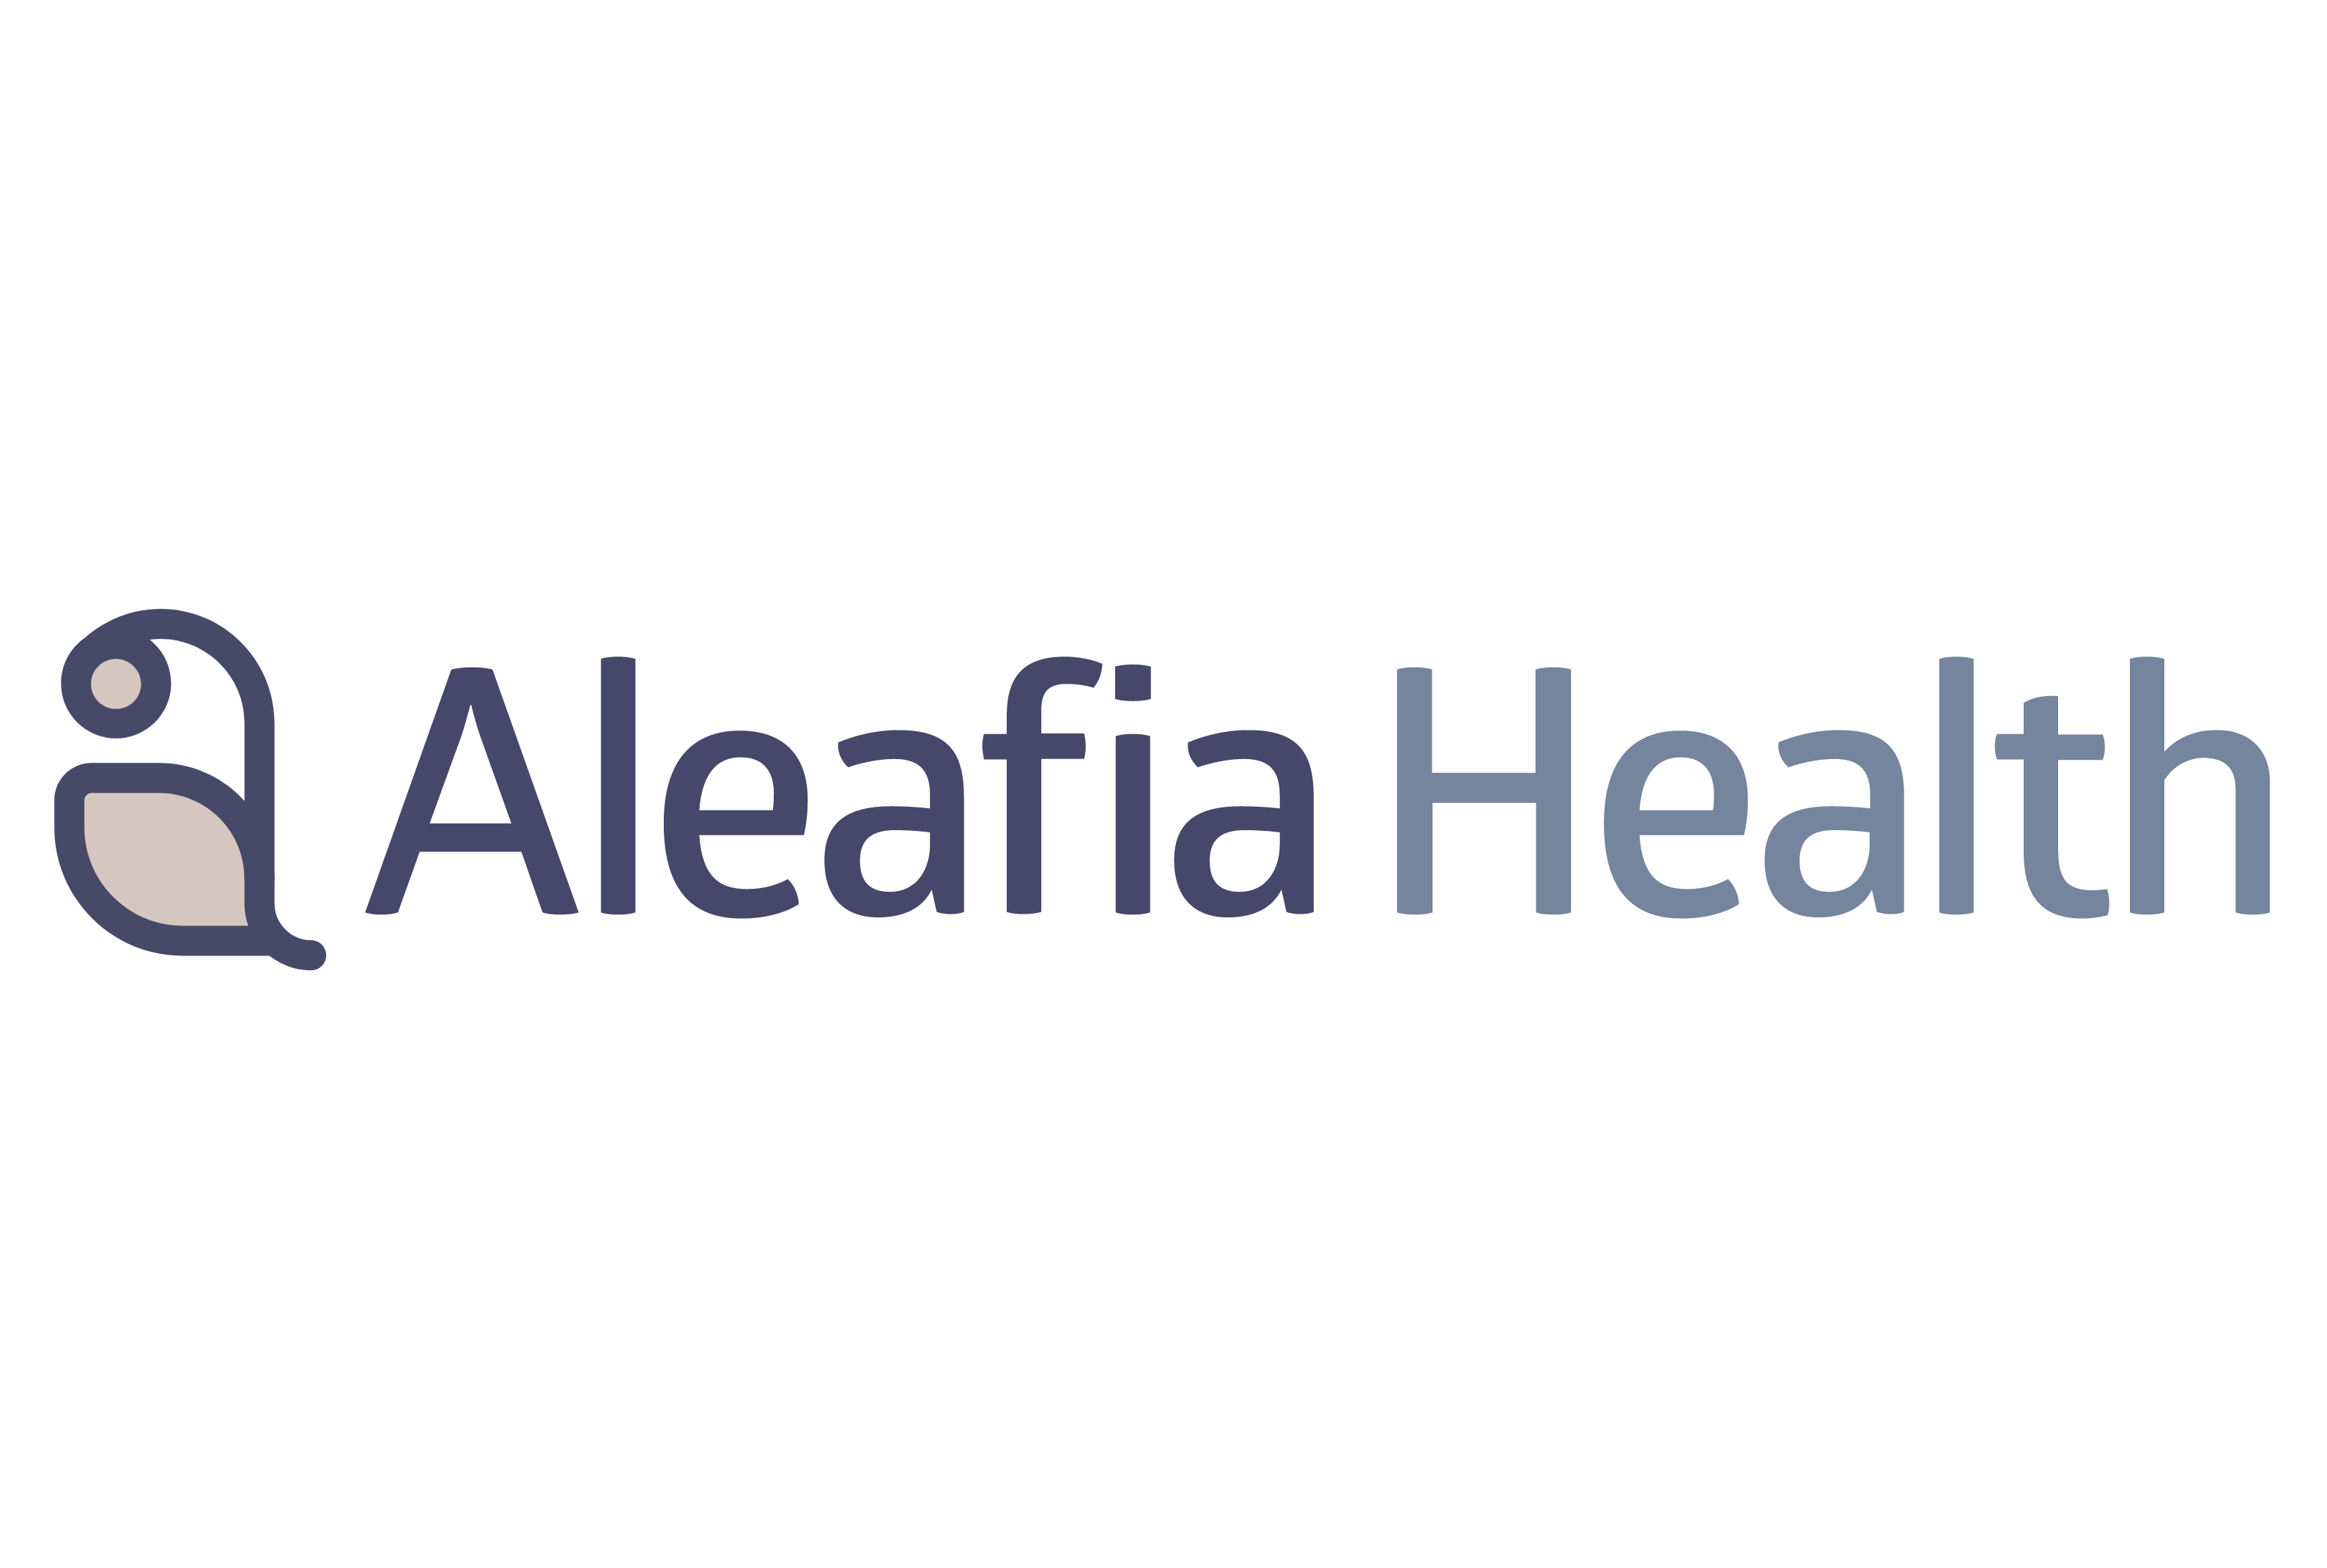 Aleafia Health Completes Clinic Assets Transaction with Myconic Capital Corp.